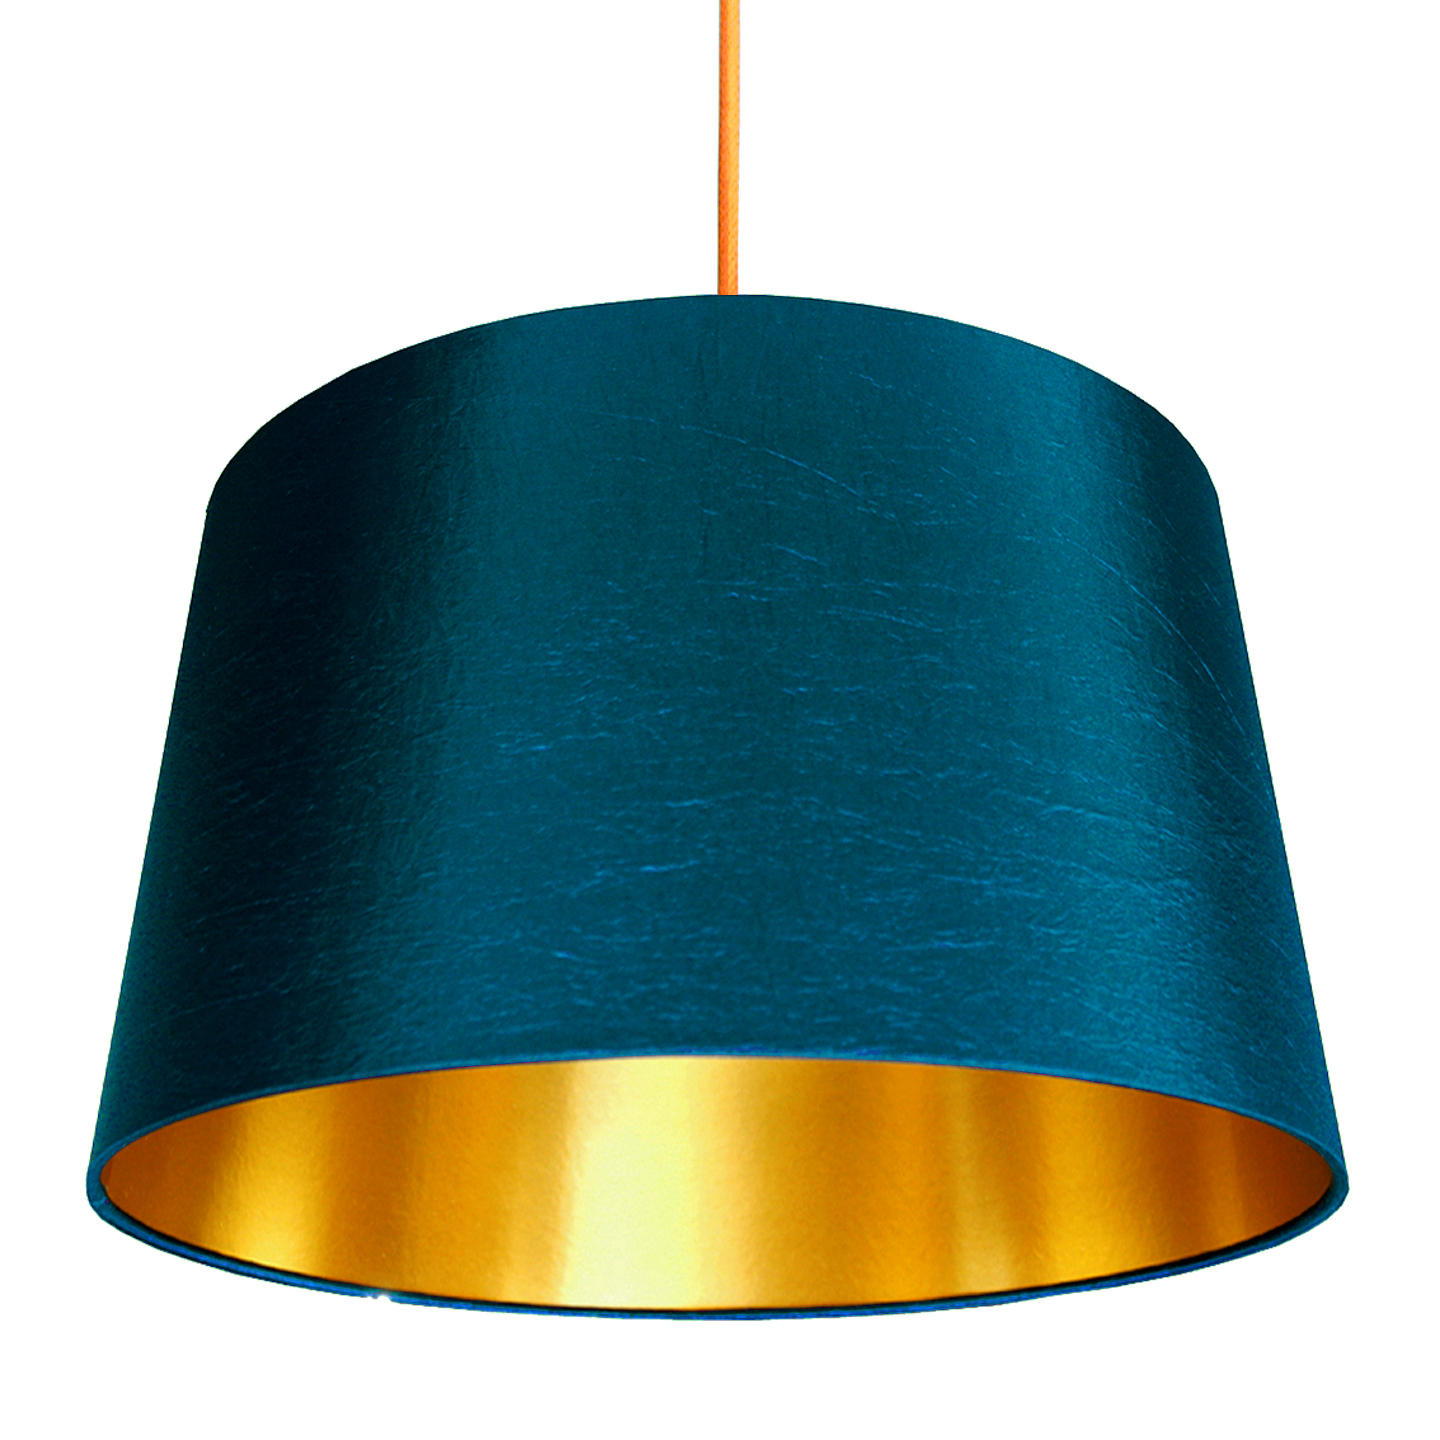 Lampenschirm Gross French Drum Lampshade In Petrol With Gold Lining | Love